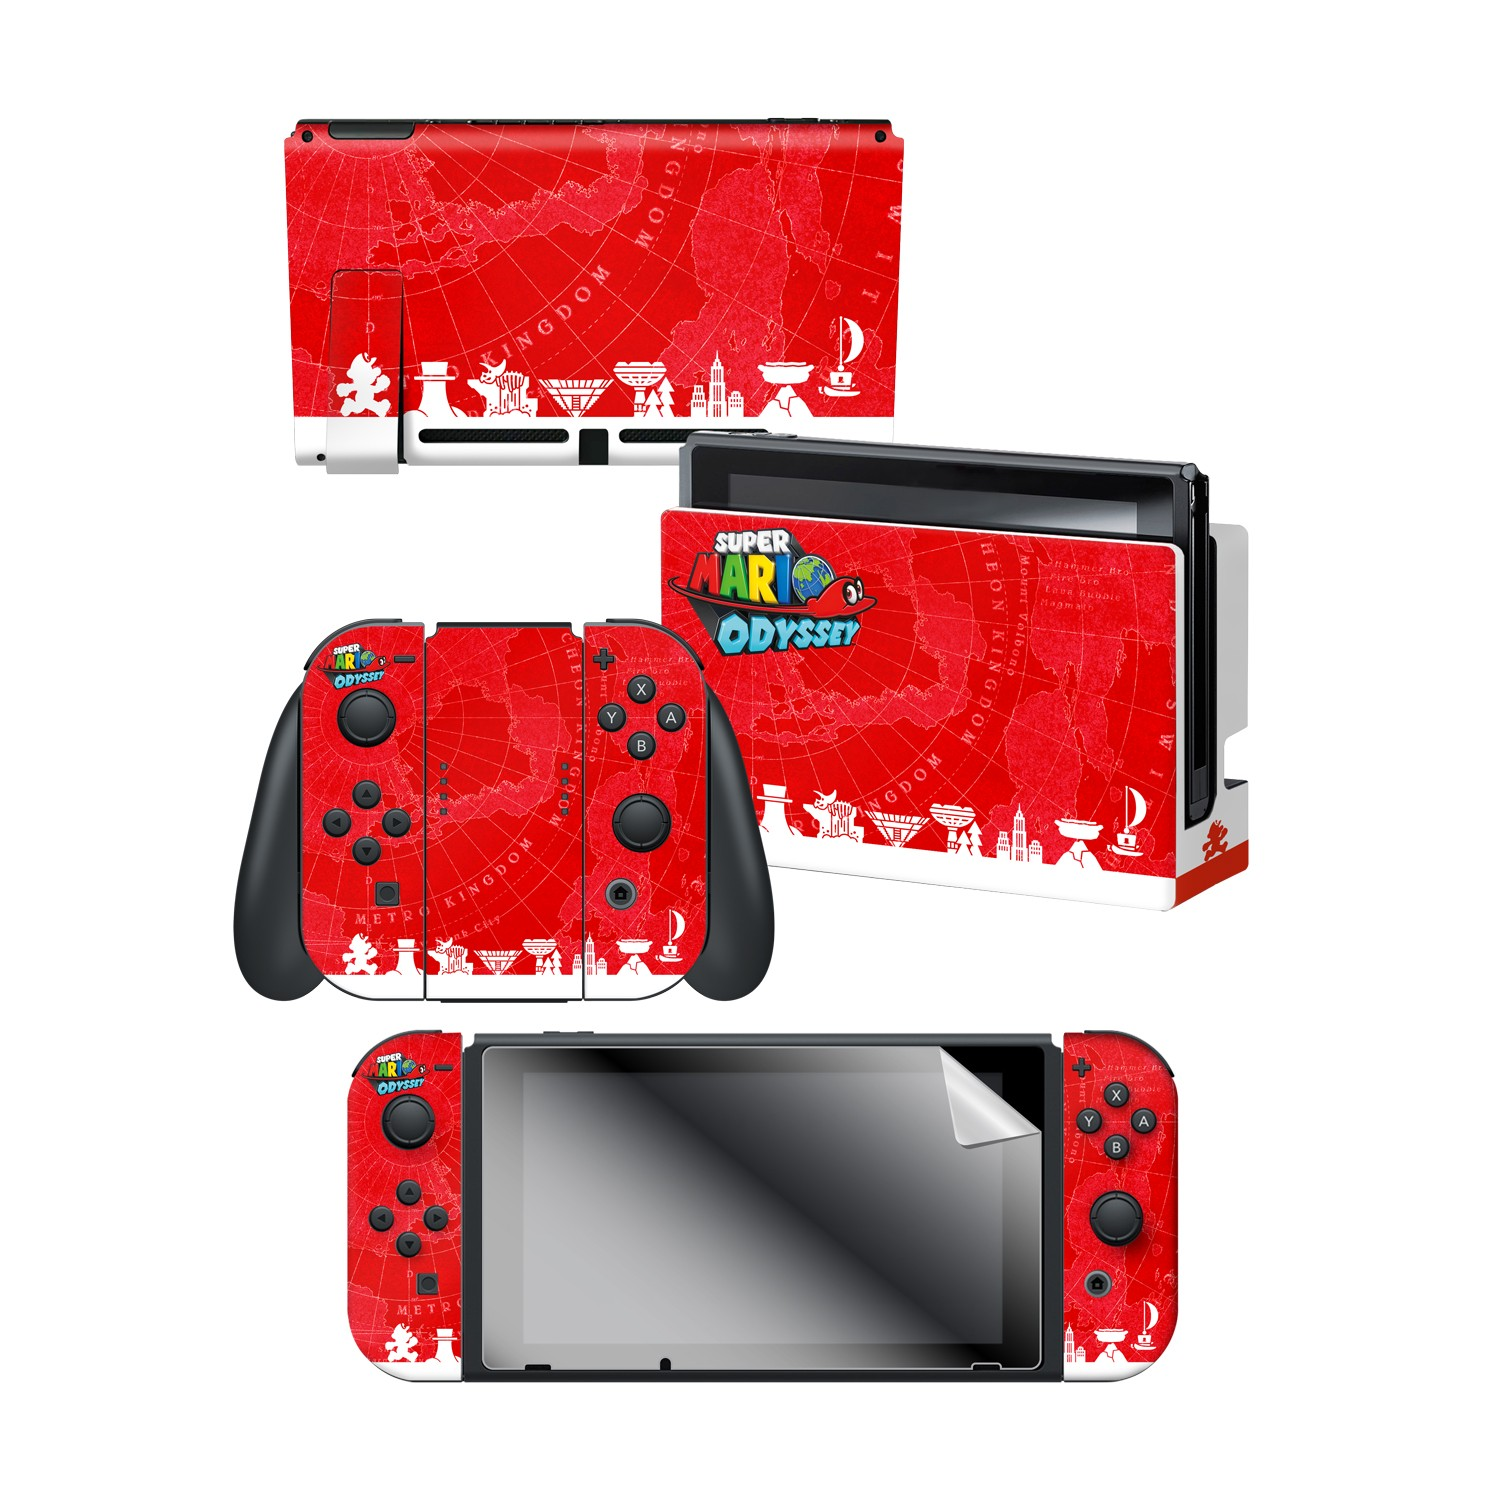 Super Mario Odyssey Globetrotter Nintendo Switch Console Skin Dock Skin Joy Con Skin Joy Con Grip Skin Screen Protector Bundle